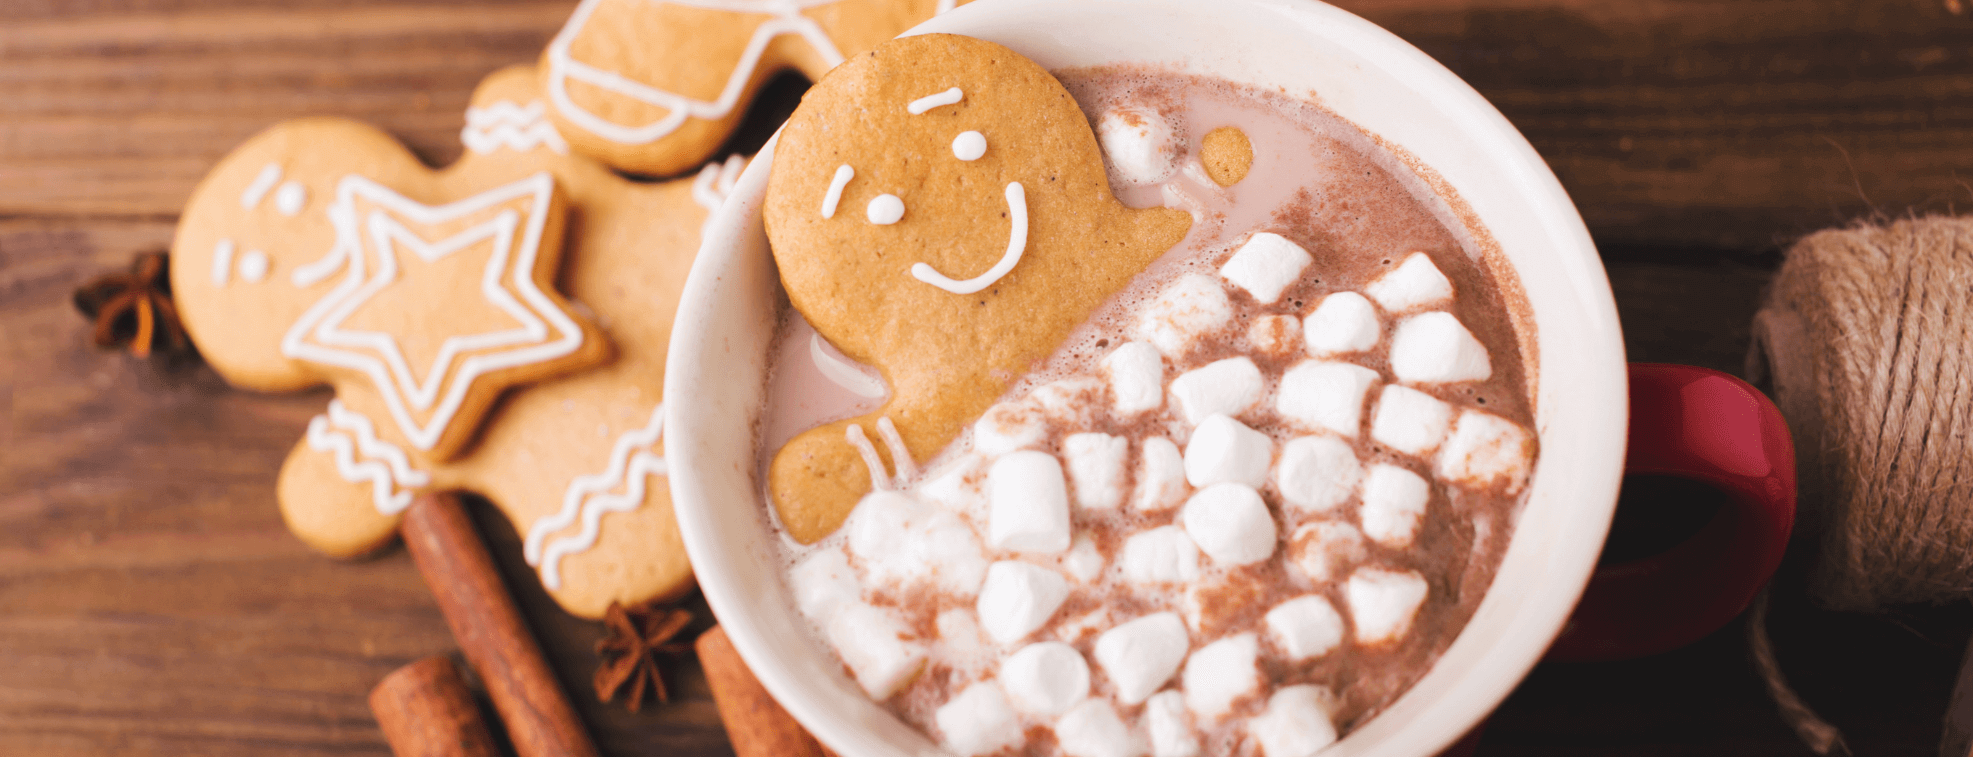 Cookies dipped in hot chocolate on the table